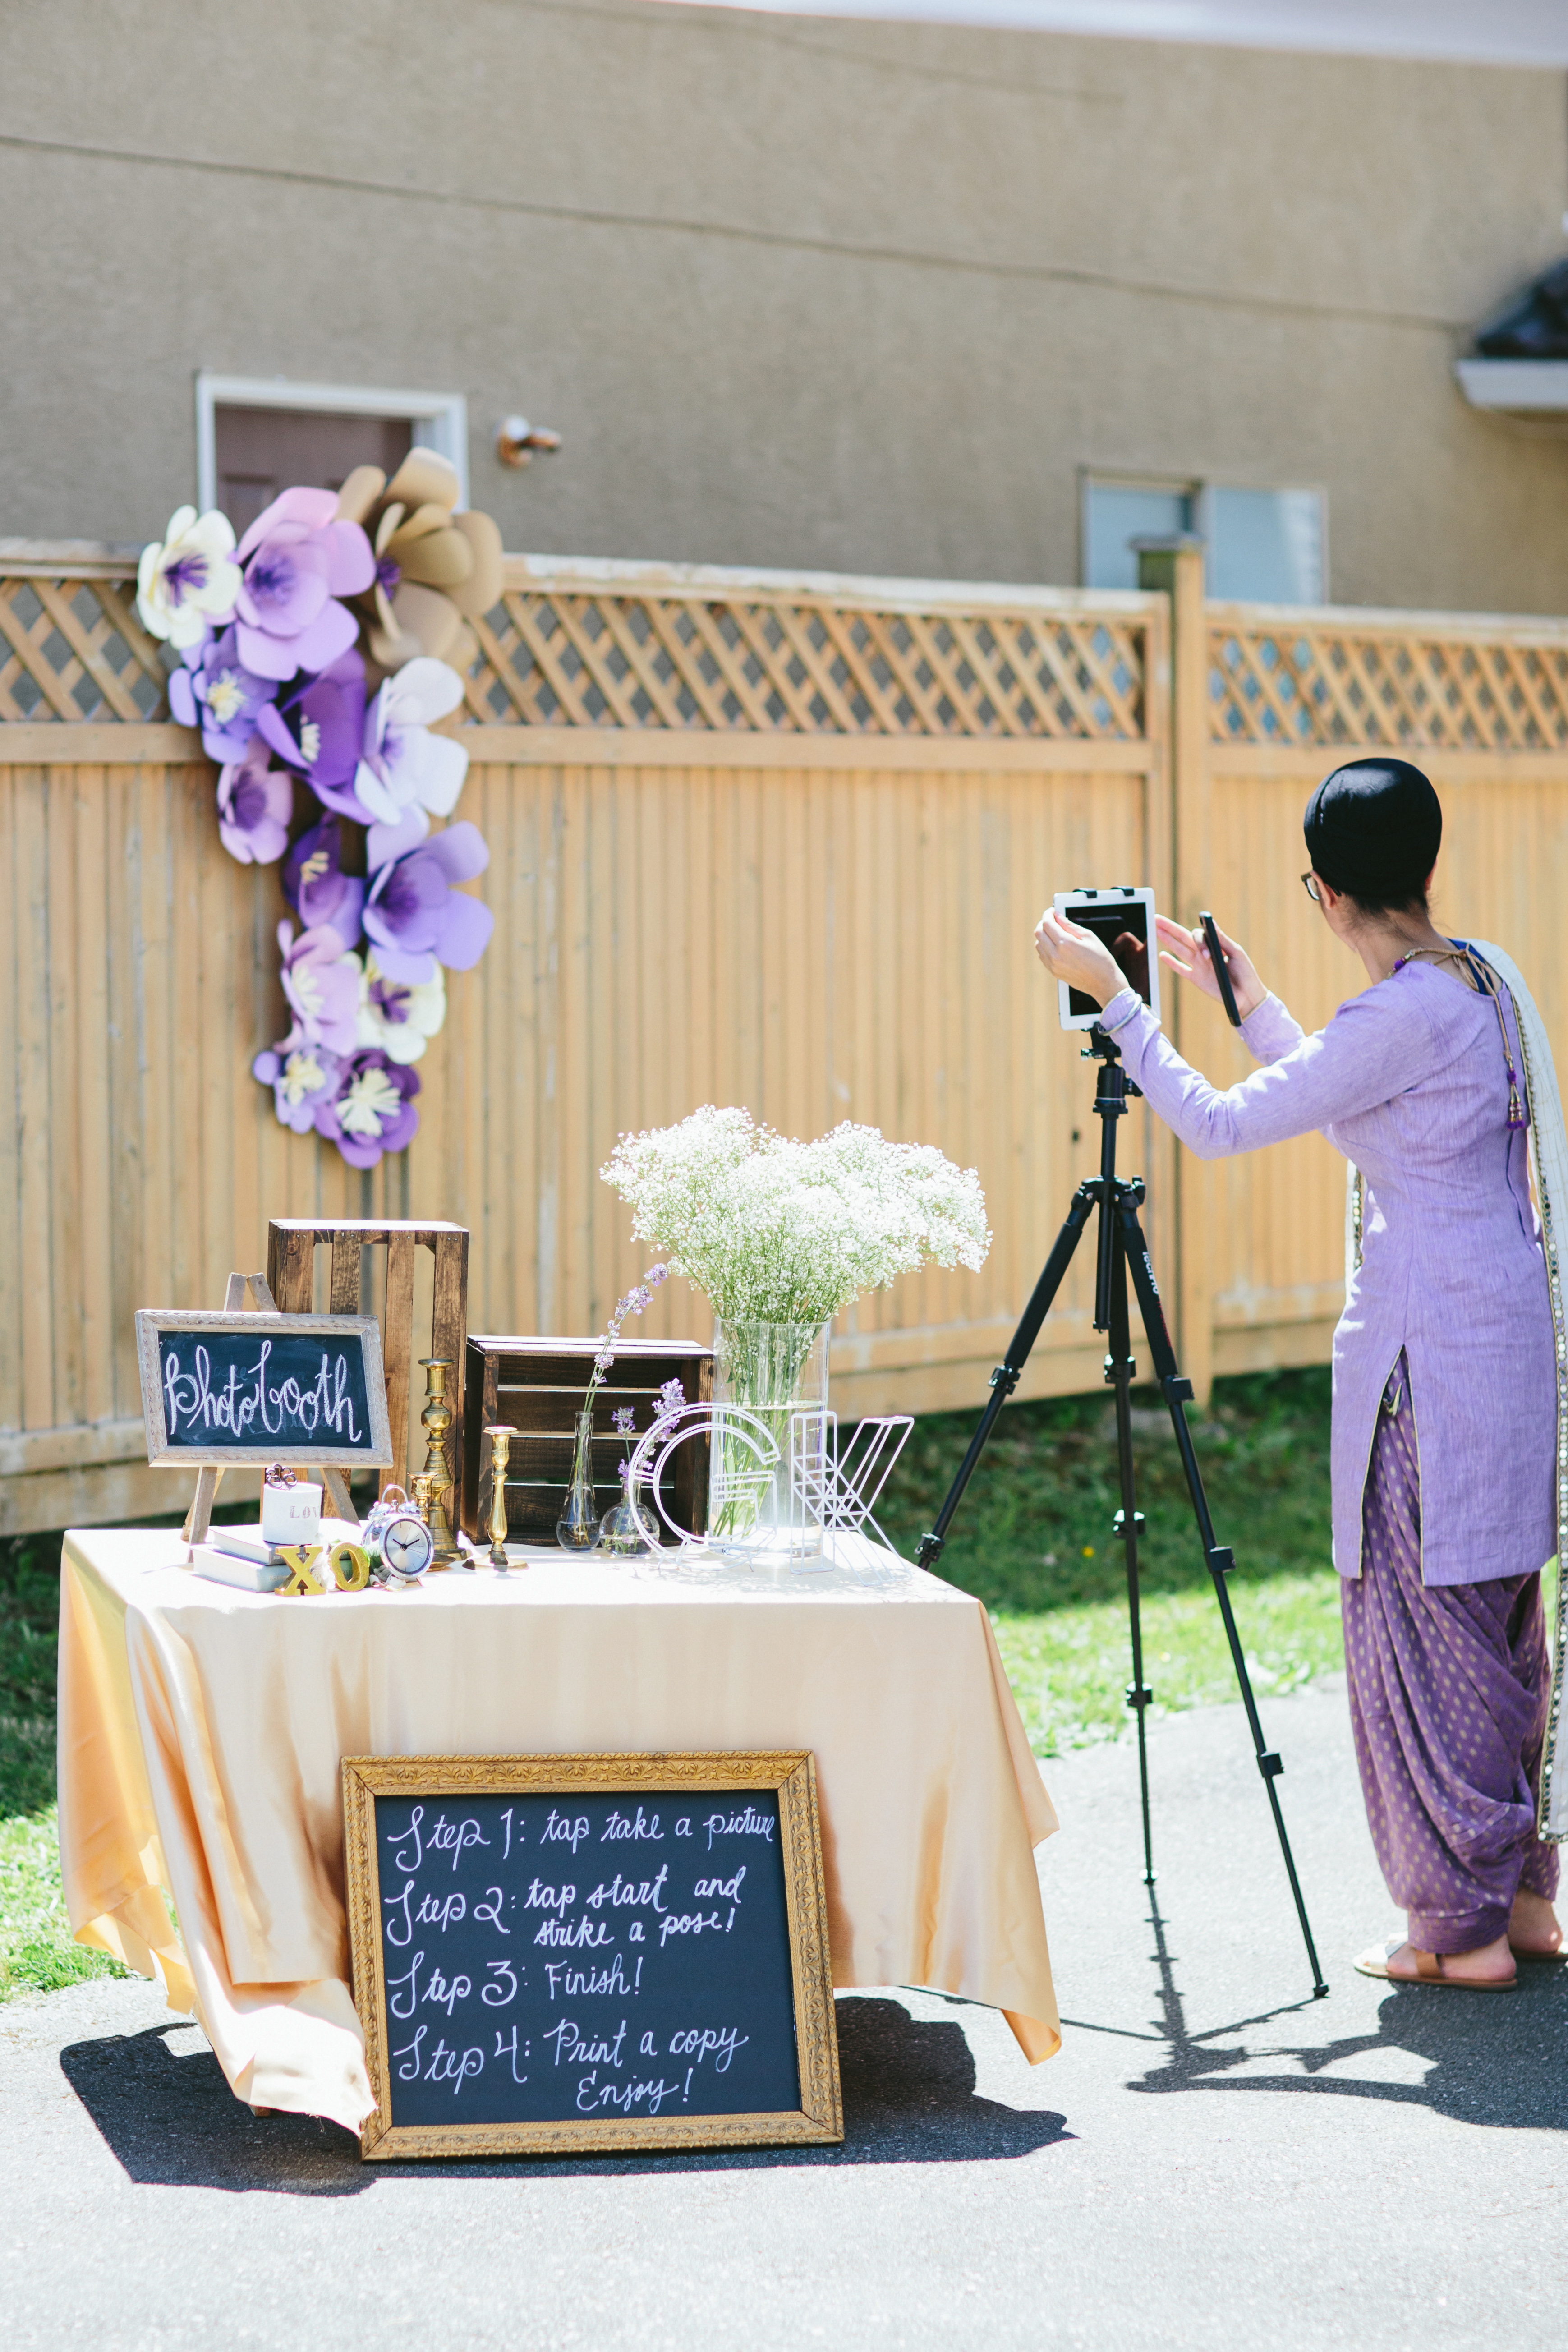 The ultimate easy DIY photo booth for your wedding, bridal shower, birthday party that is super easy to set up and very affordable and fun!